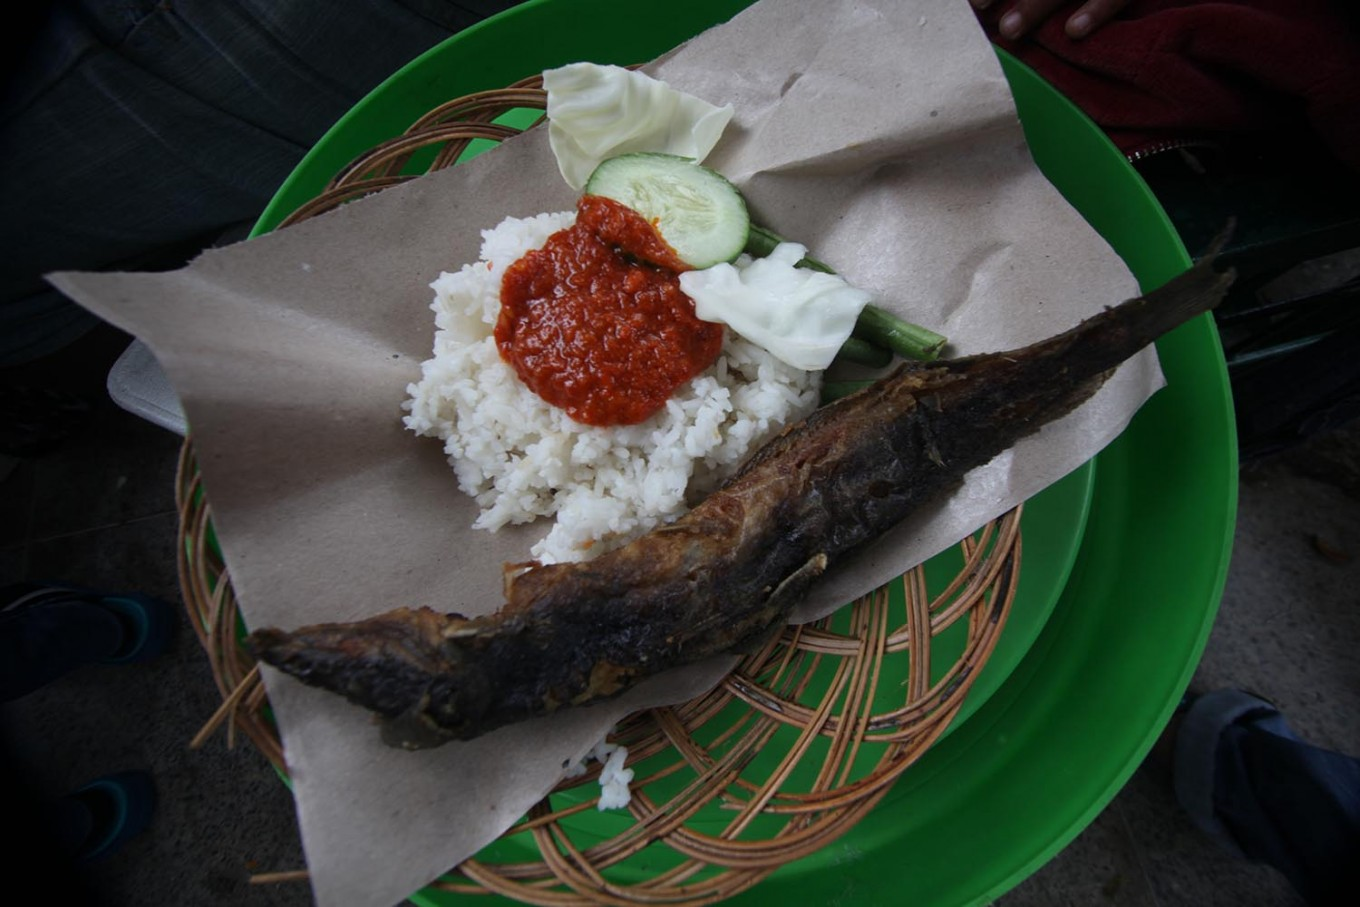 The free meal at Shodaqoh food stall consists of a portion of rice, fried catfish, sambal and vegetables. JP/ Boy T. Harjanto